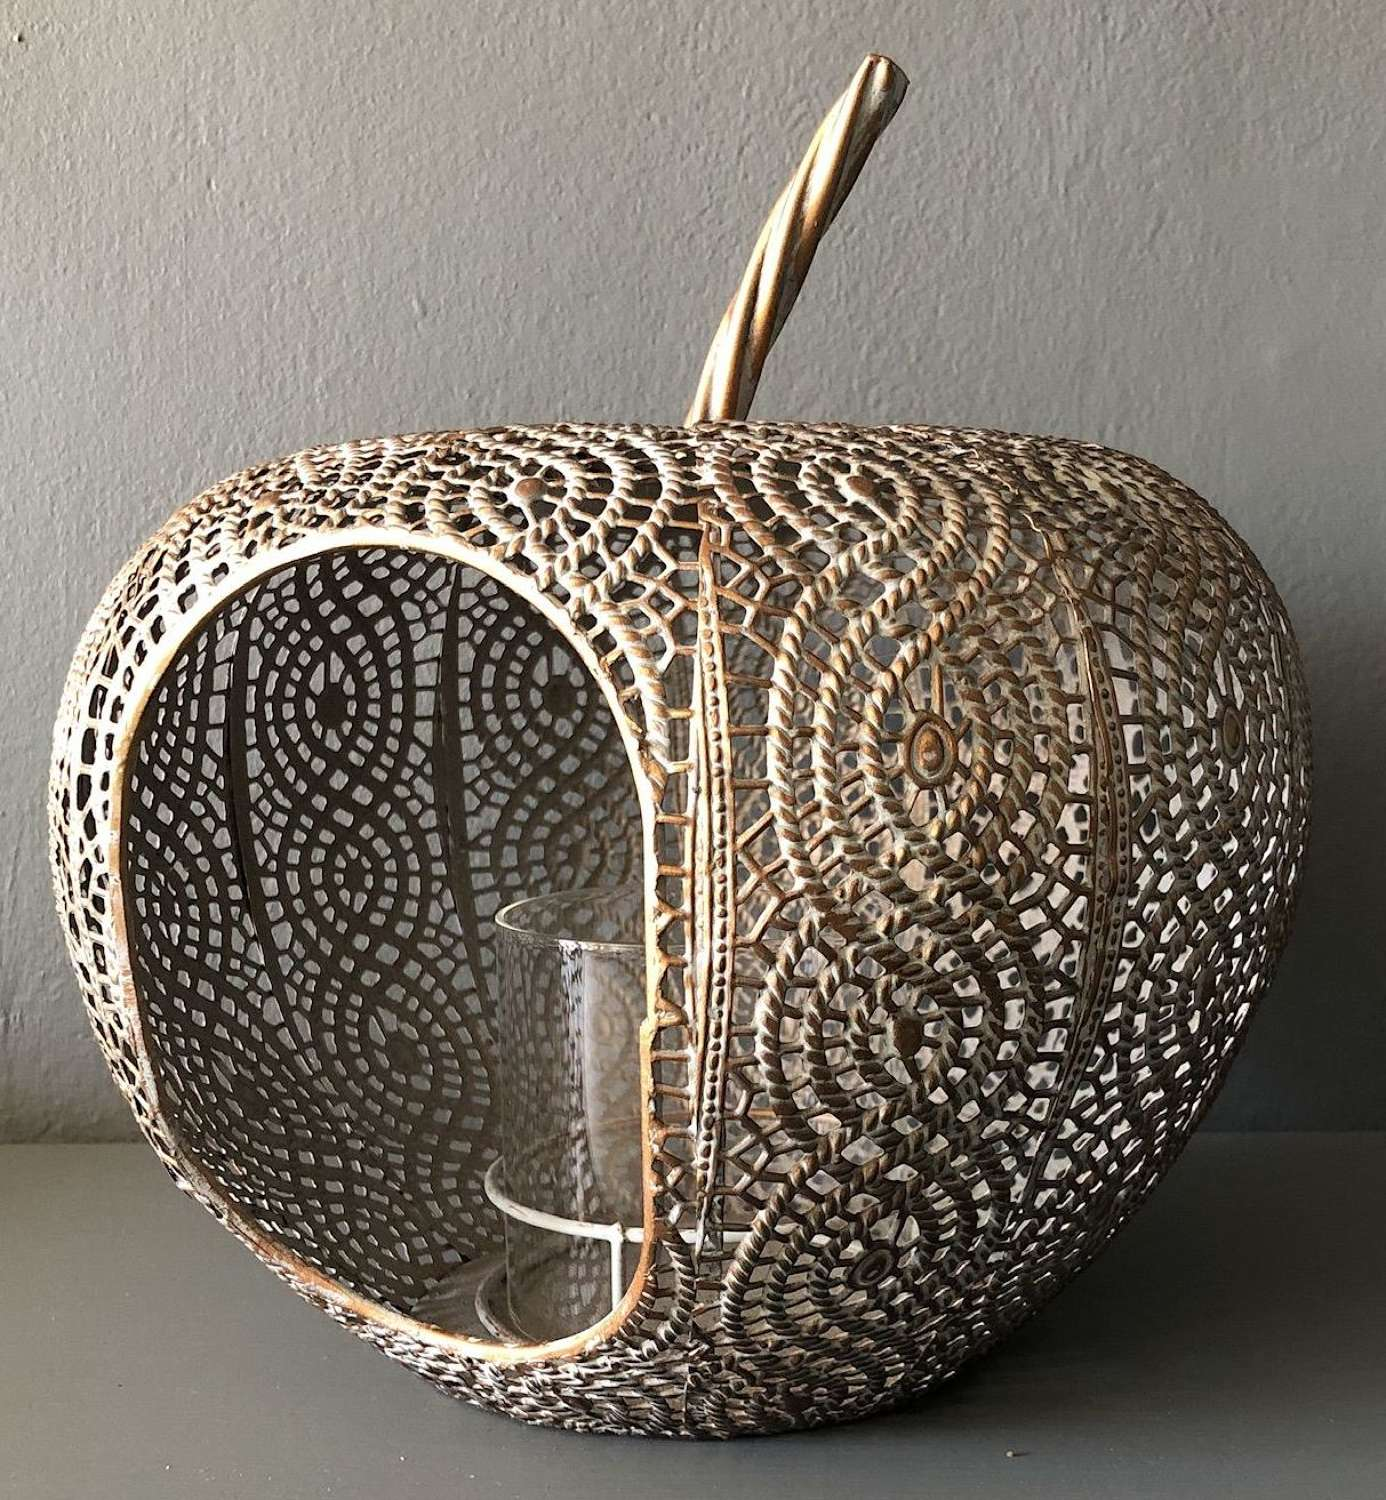 Metal apple lantern